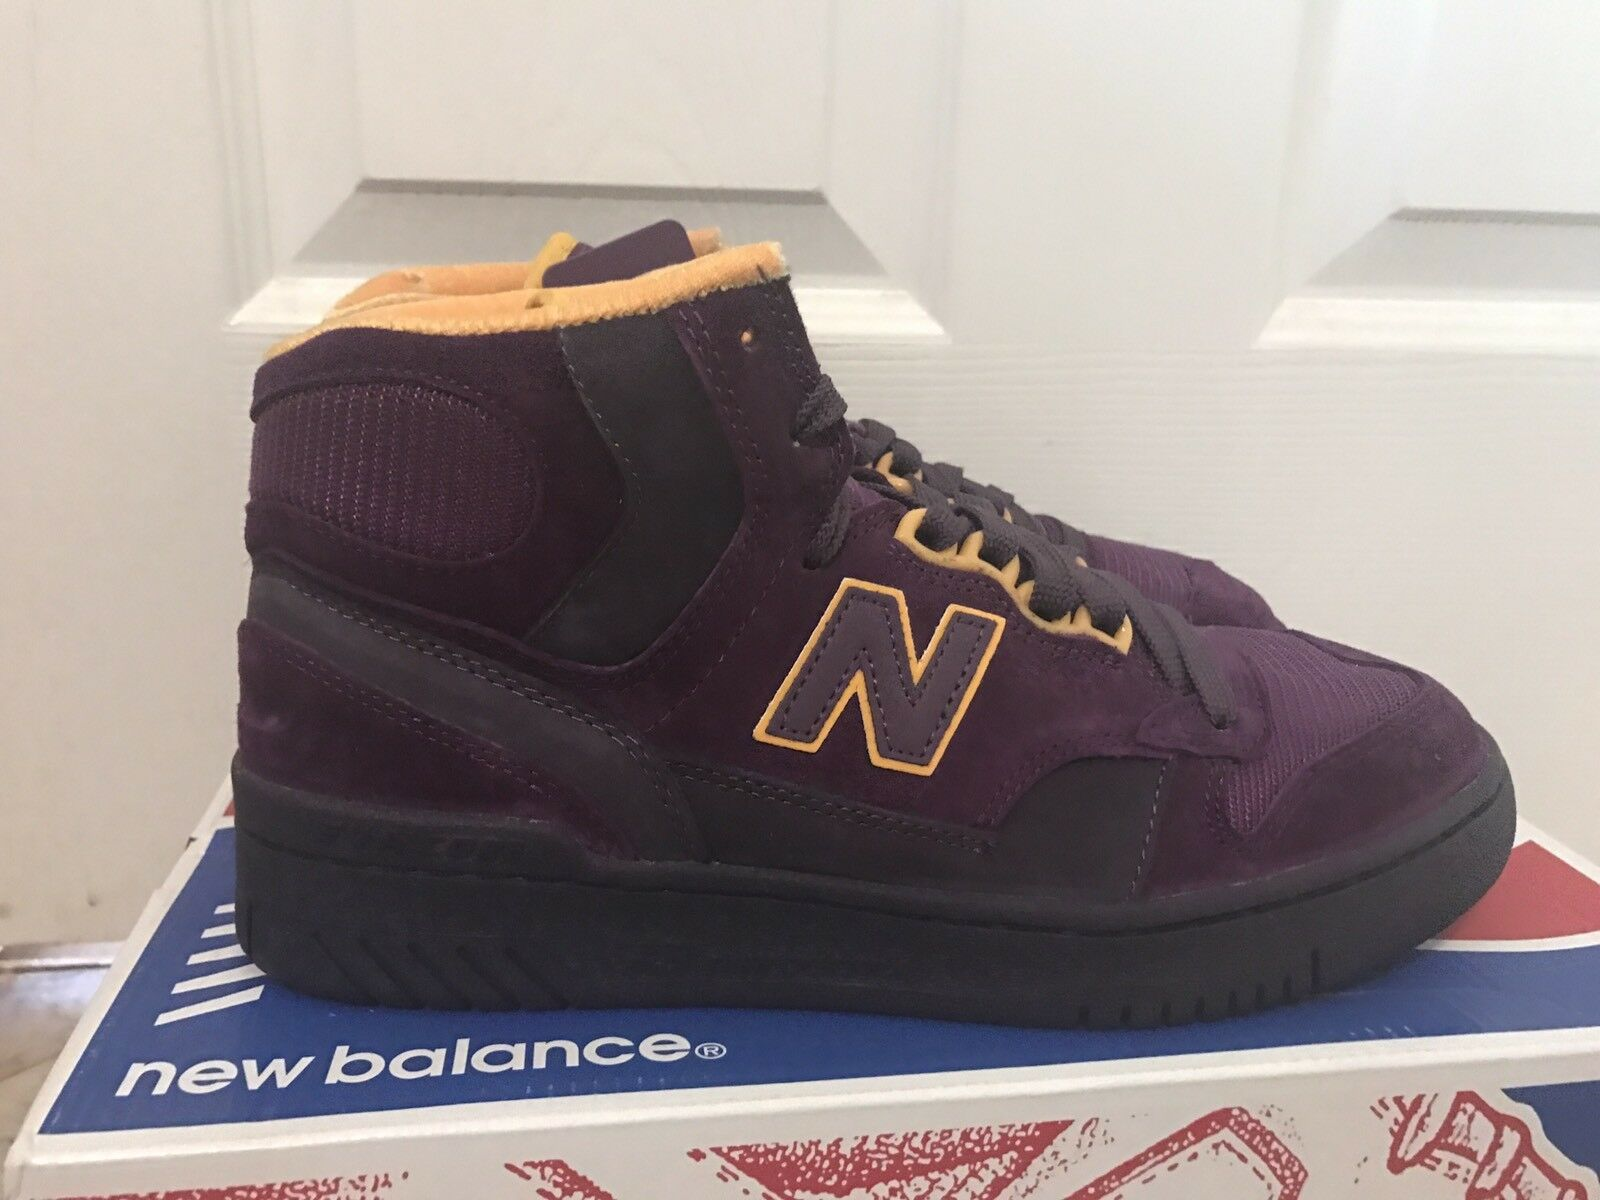 NEW BALANCE LIFESTYLE P740PPR PURPLE REIGN REIGN PURPLE JAMES WORTHY PACKER GOLD SIZE 7 DS 7bc949